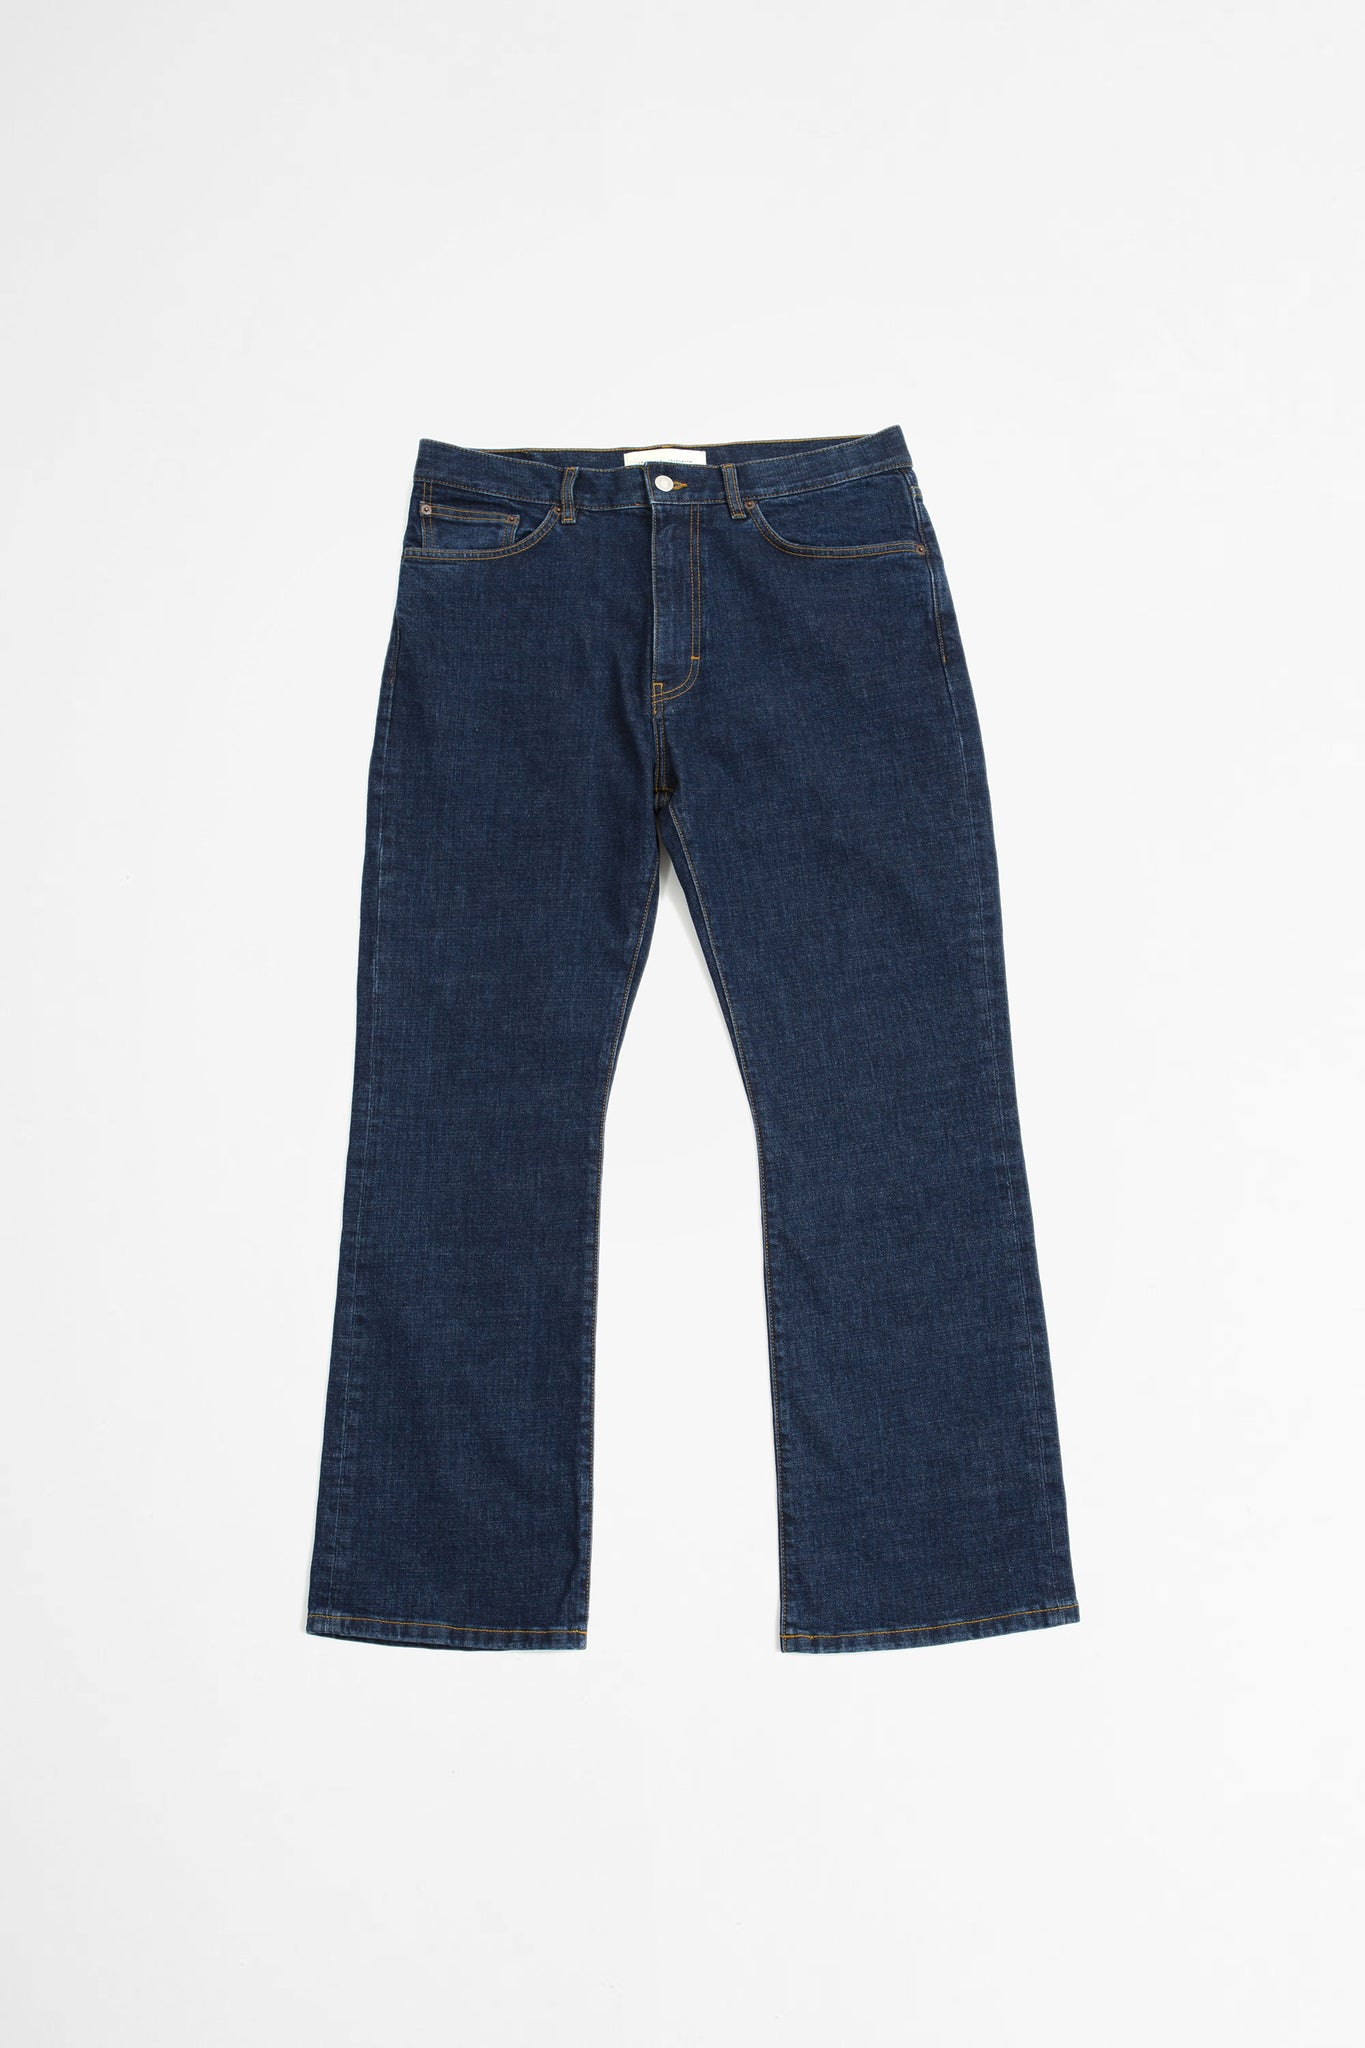 Phoenix fit jeans blue 2 weeks